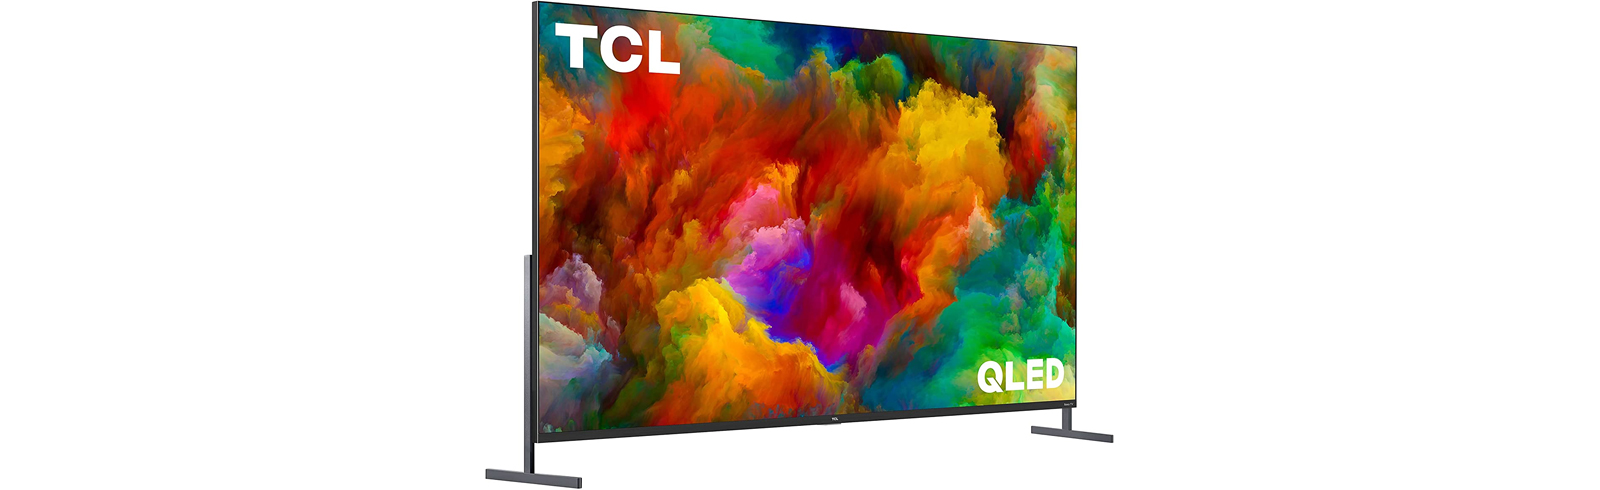 The TCL 85R745 QLED and the TCL 85R435 Roku TVs from the XL Collection go on sale in the USA